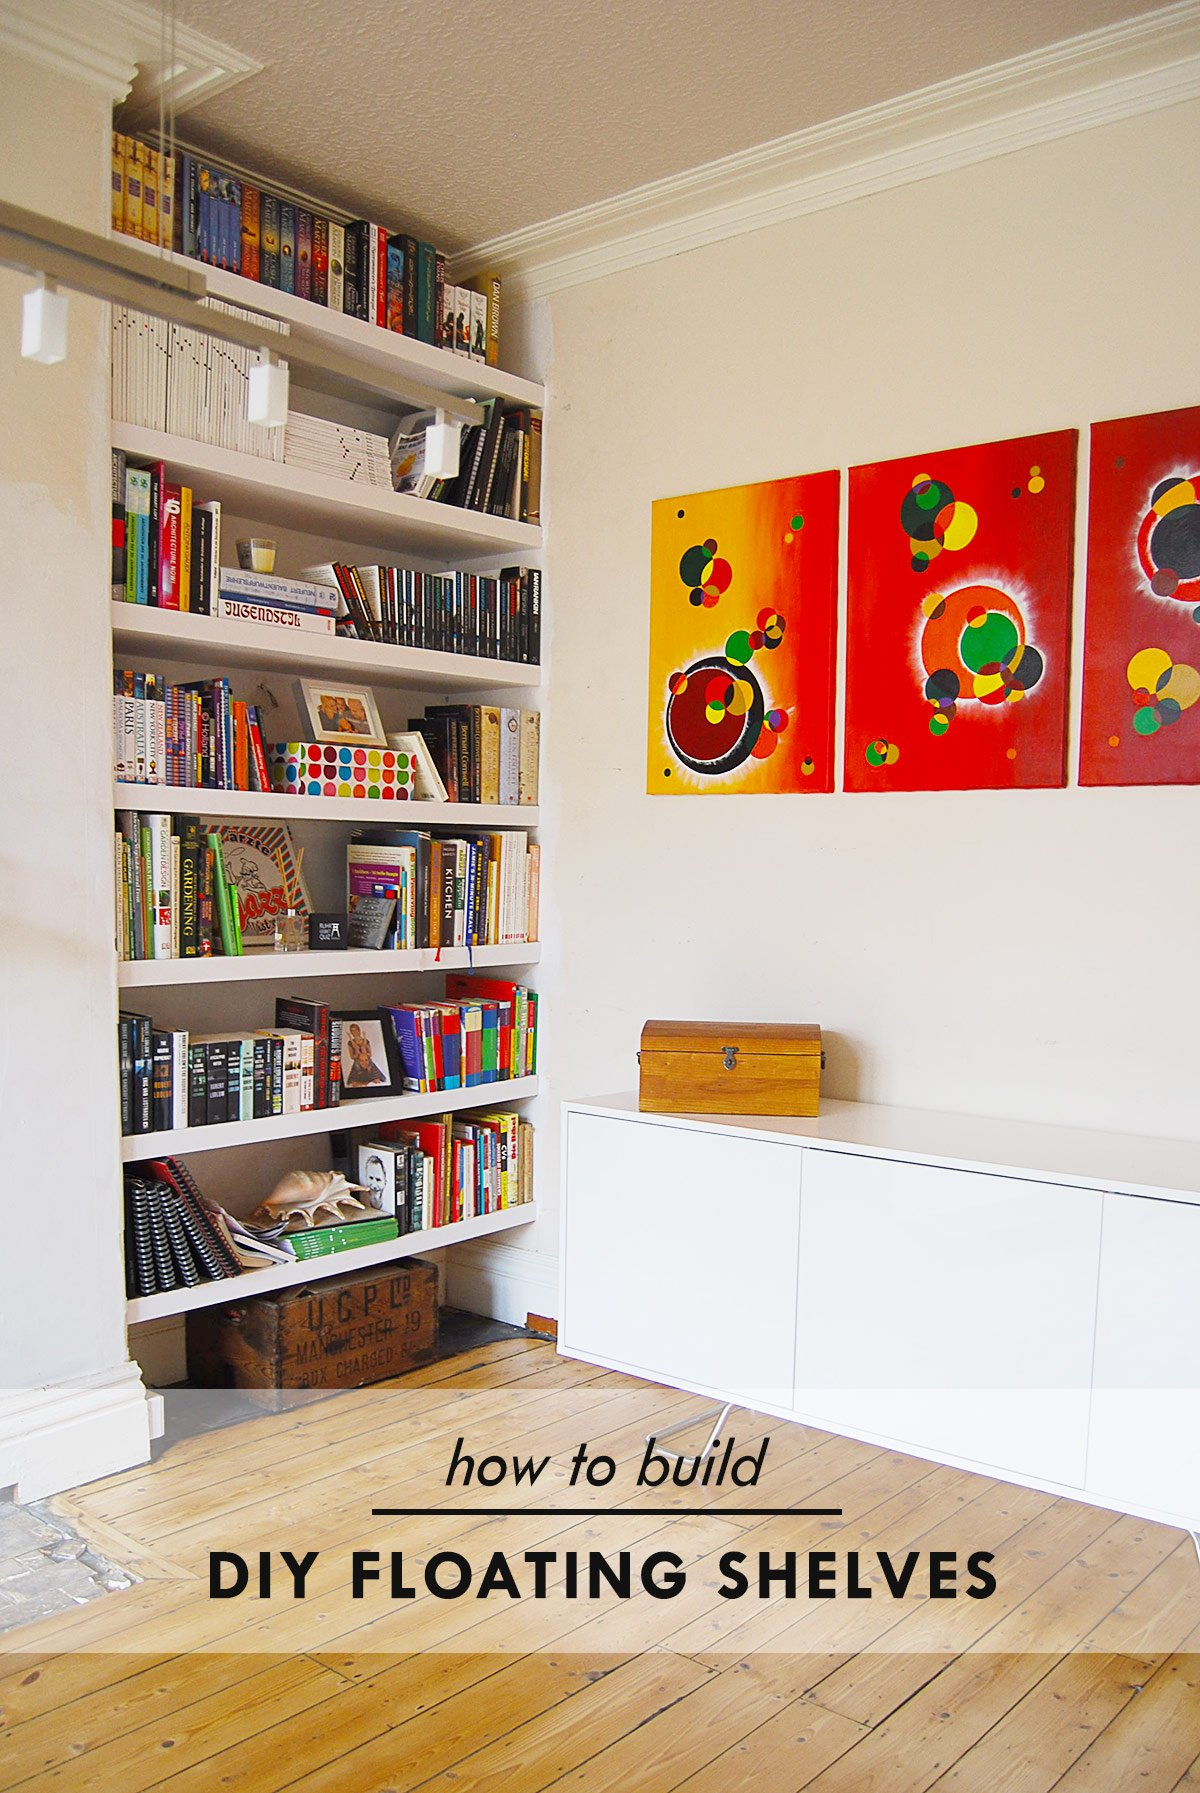 diy floating shelves little house the corner build shelf weight bearing computer tablet furniture pegs pine wall mount small electronics open shelving ideas for kitchen rustic